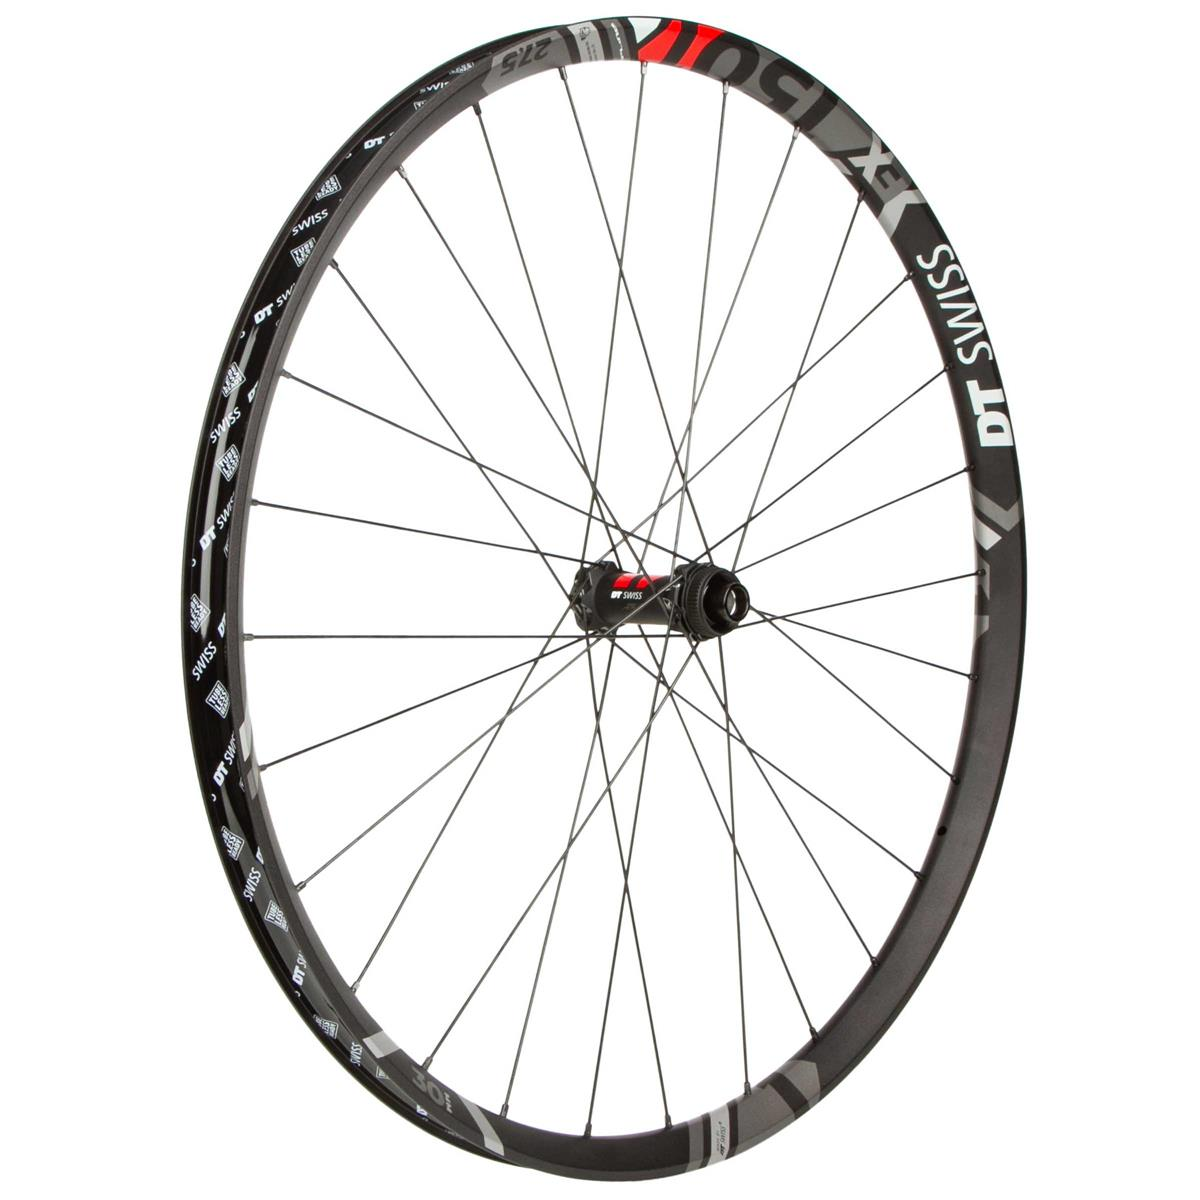 DT Swiss Laufrad EX 1501 Spline One Vorn, 27,5 Zoll, 15x110 mm TA, Boost, Center Lock, 30 mm